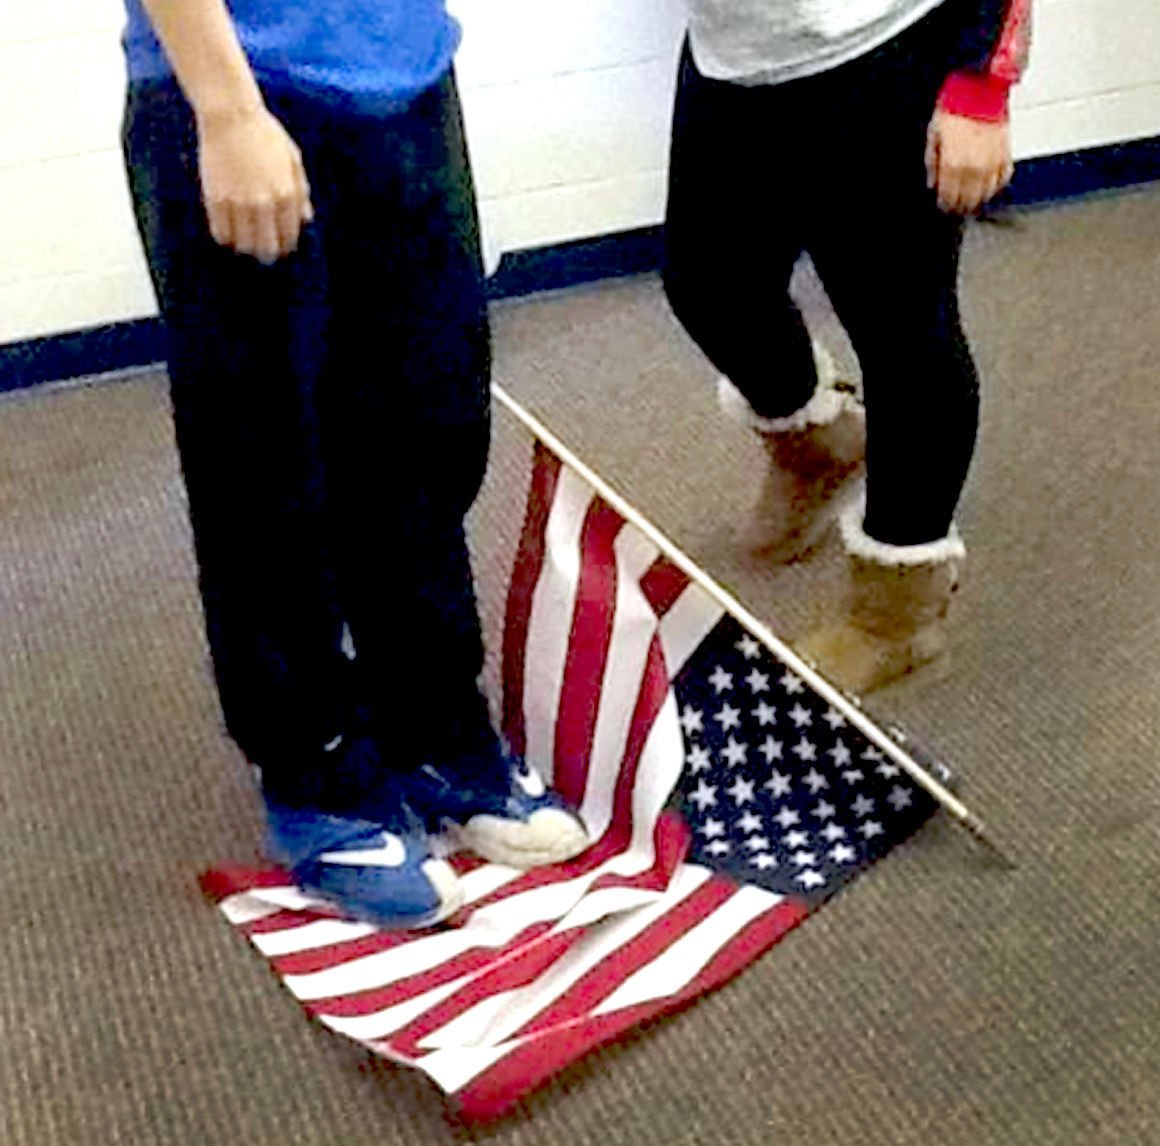 America S Police News: Photo Of Teen Standing On American Flag Prompts School